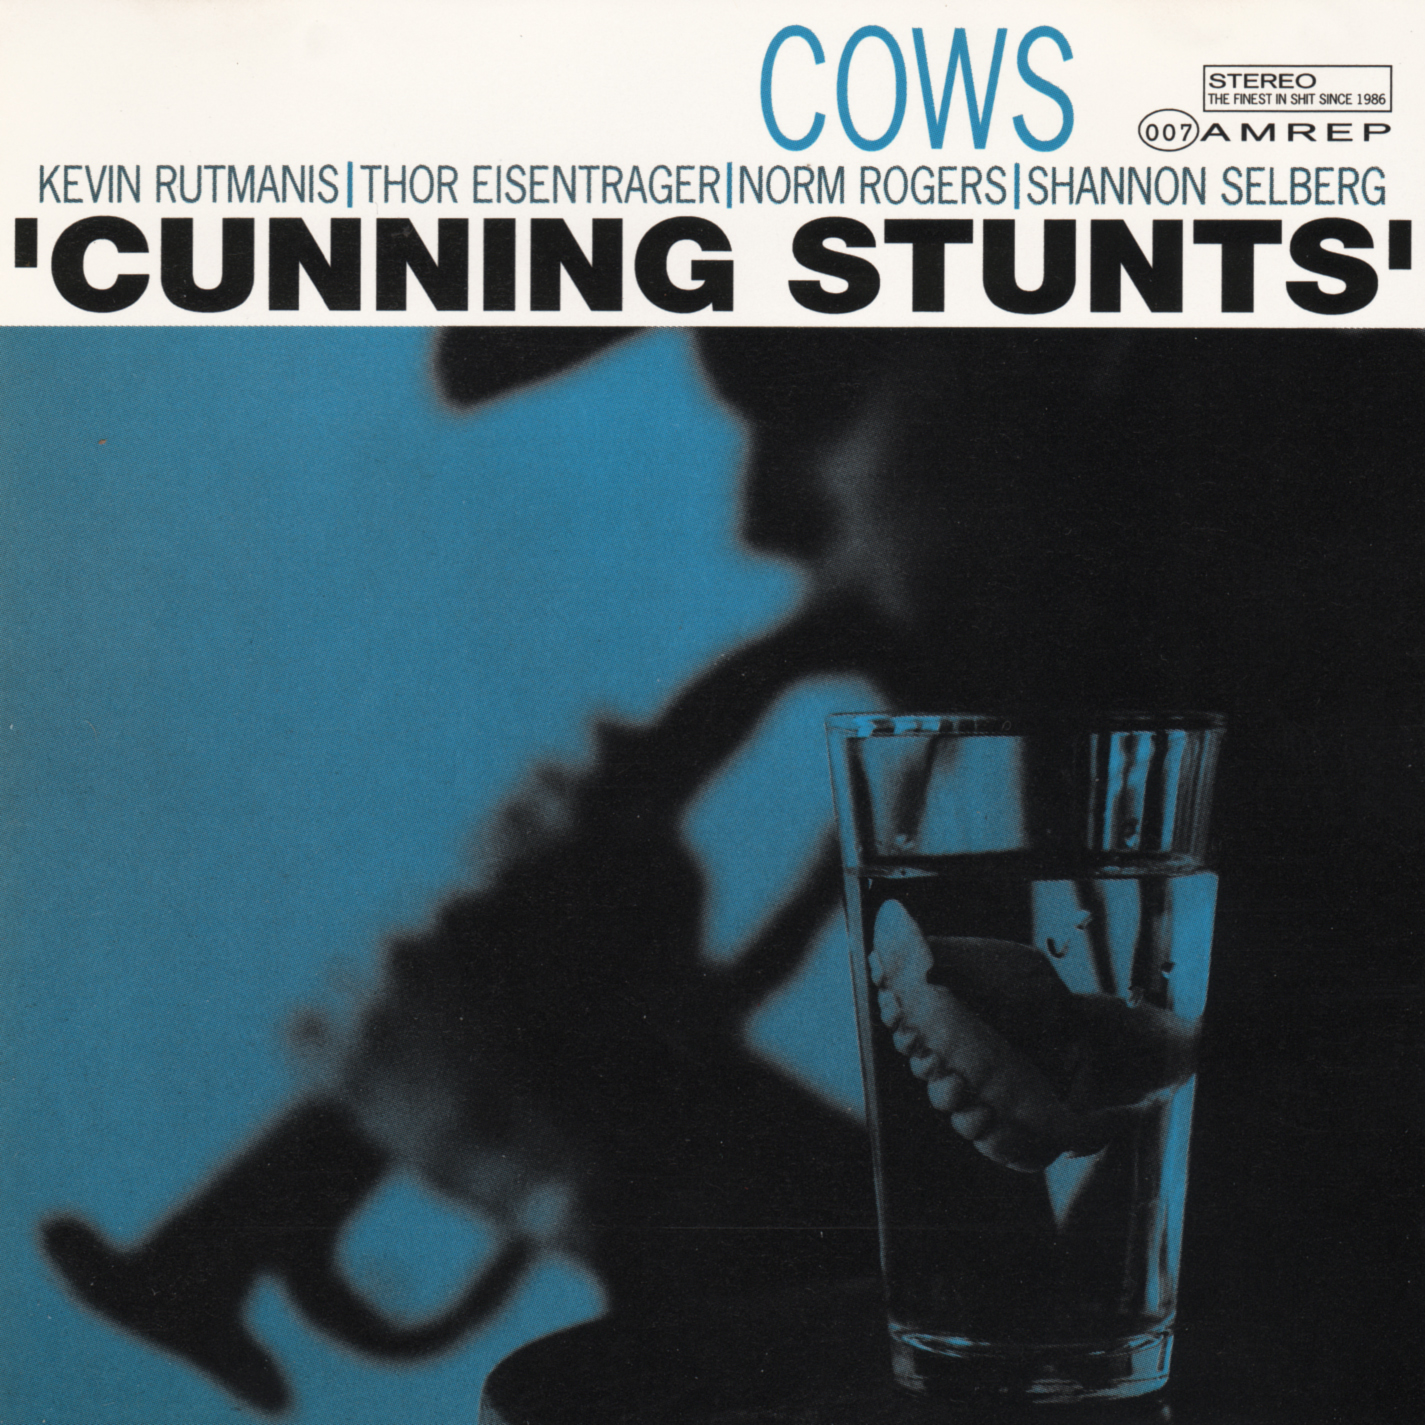 Cows – Cunning Stunts (AmRep, 1992). Cover photo by Daniel Corrigan.